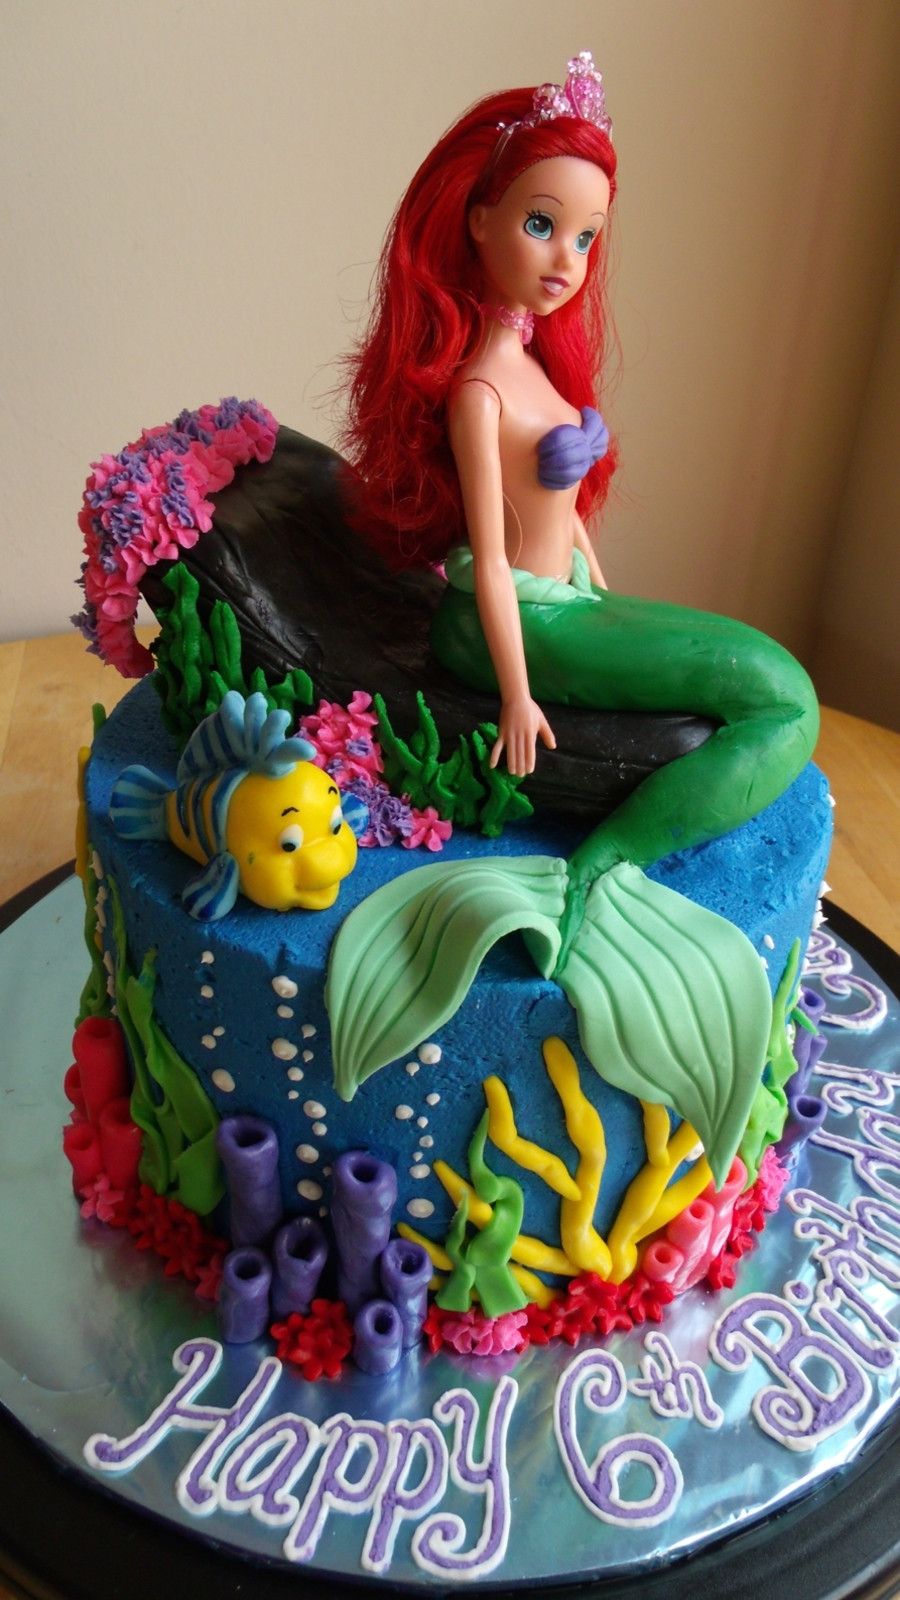 Mermaid Birthday Cake  The Little Mermaid Cake And Cupcakes CakeCentral